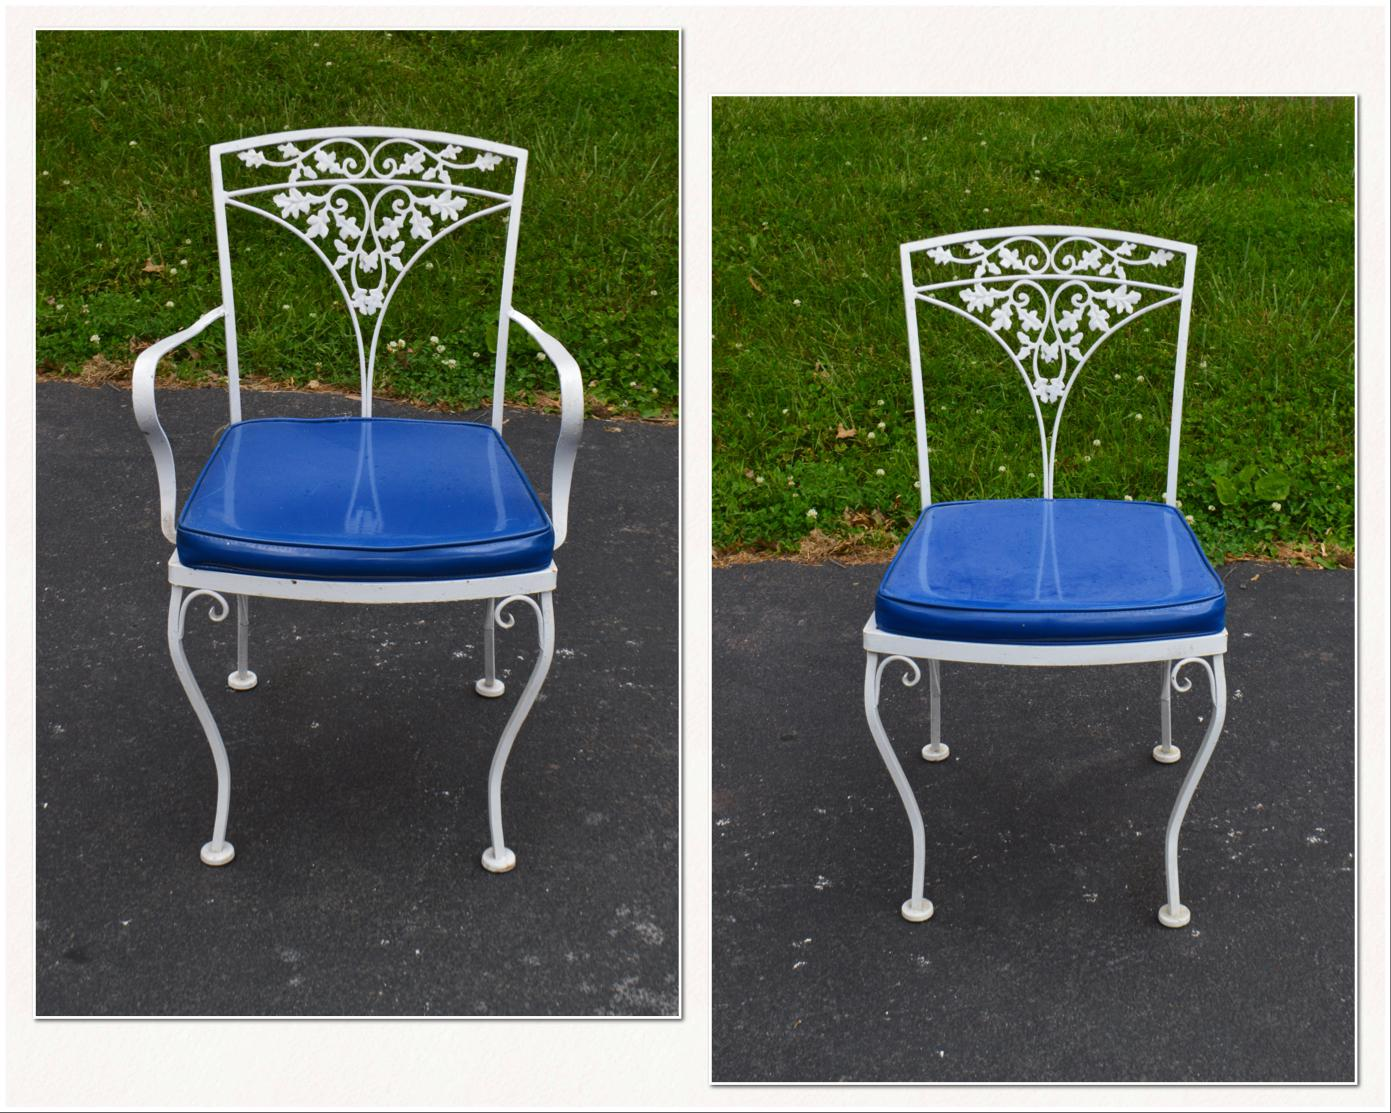 White wrought iron garden furniture Victorian store Item 18257 Woodard Ivy Vintage White Wrought Iron Patio Glass Top Table Heritagehymnsinfo Woodard Ivy Vintage White Wrought Iron Patio Glass Top Table